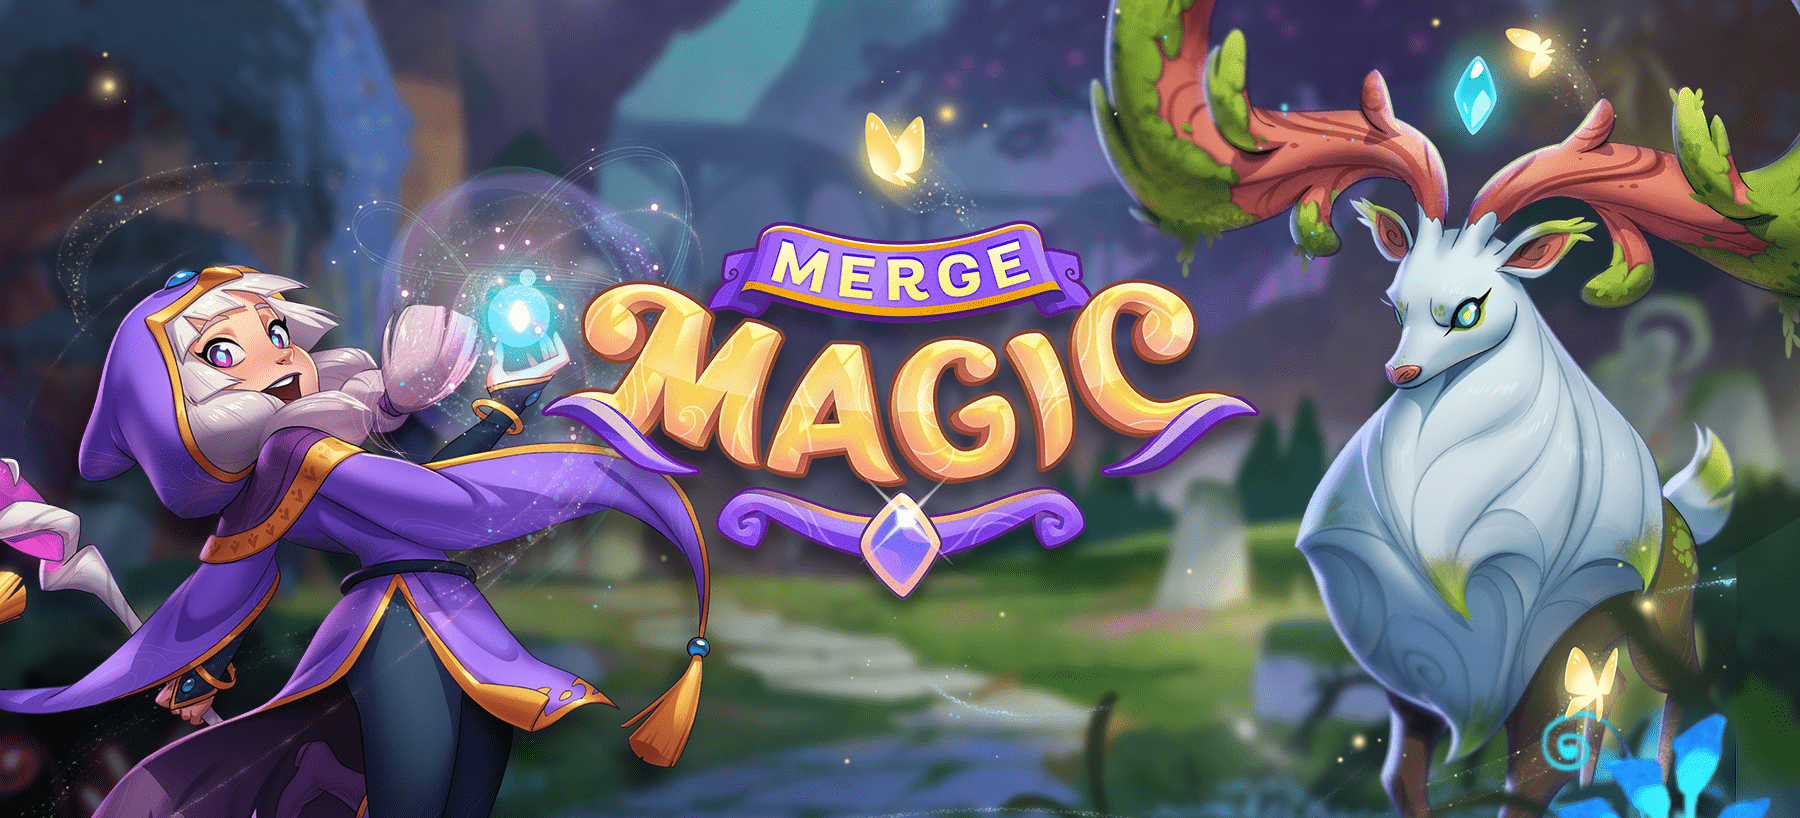 Merge Magic! Hero Image